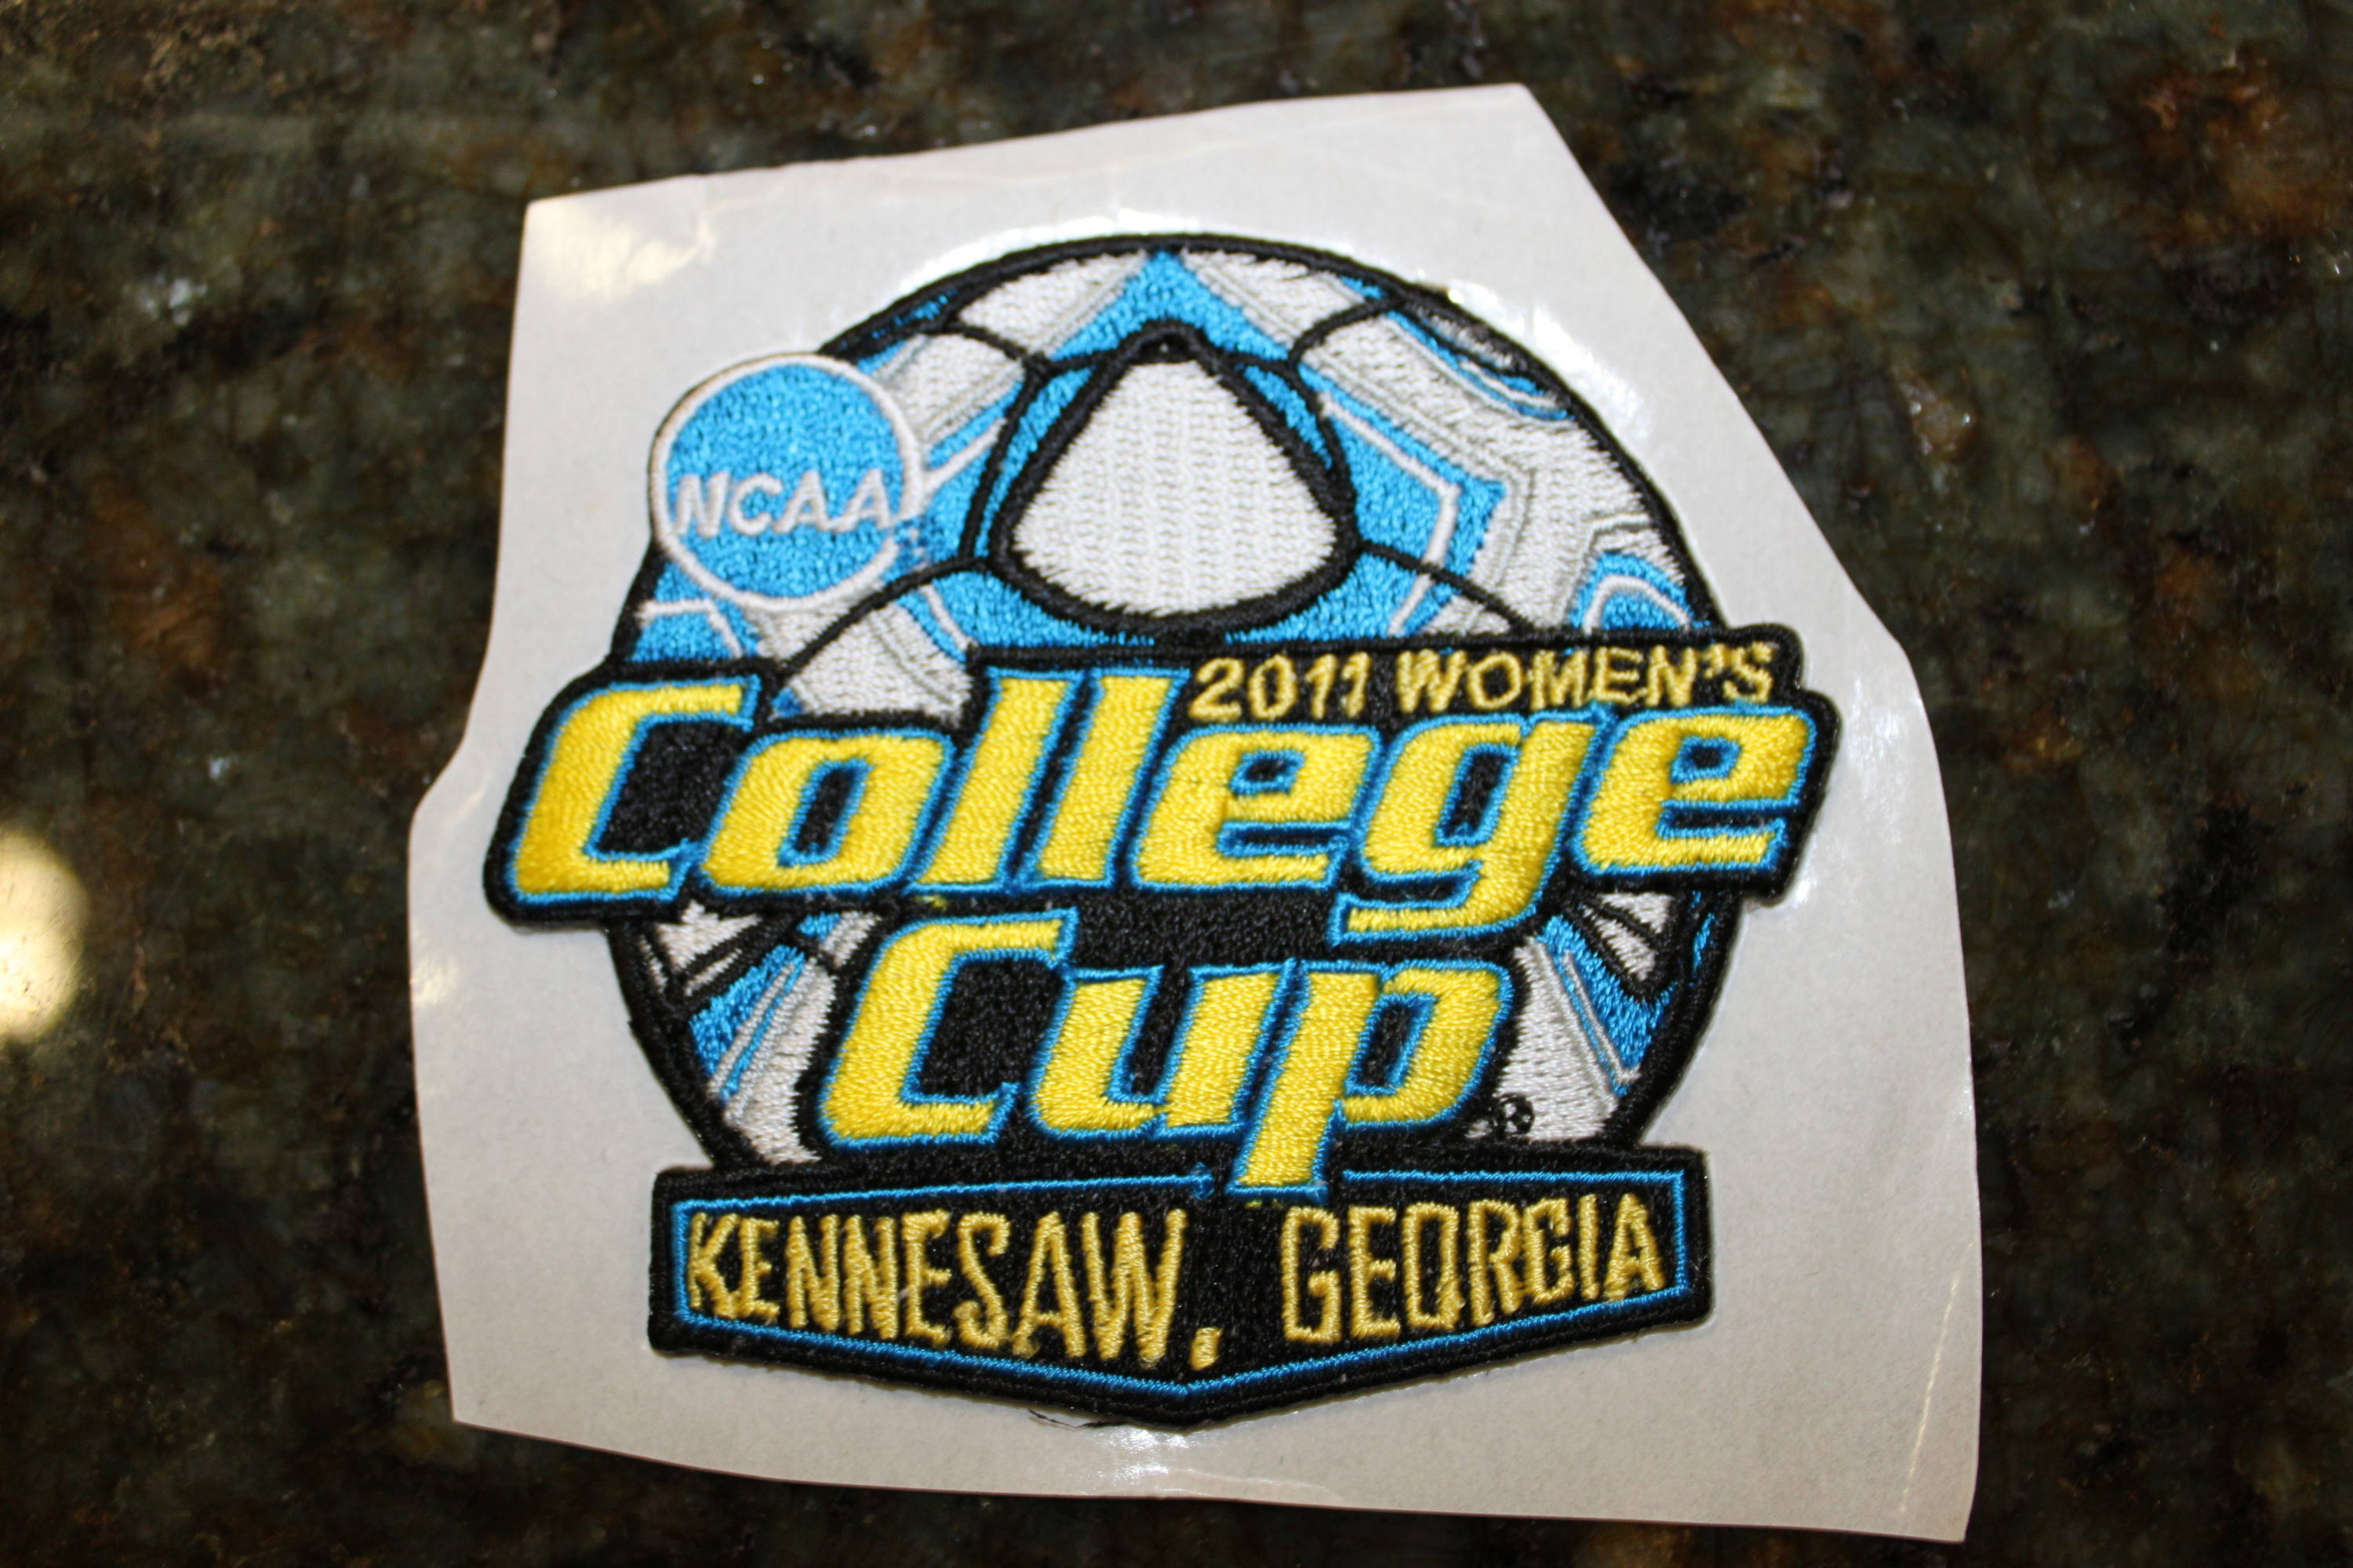 The patch - 2011 College Cup Banquet